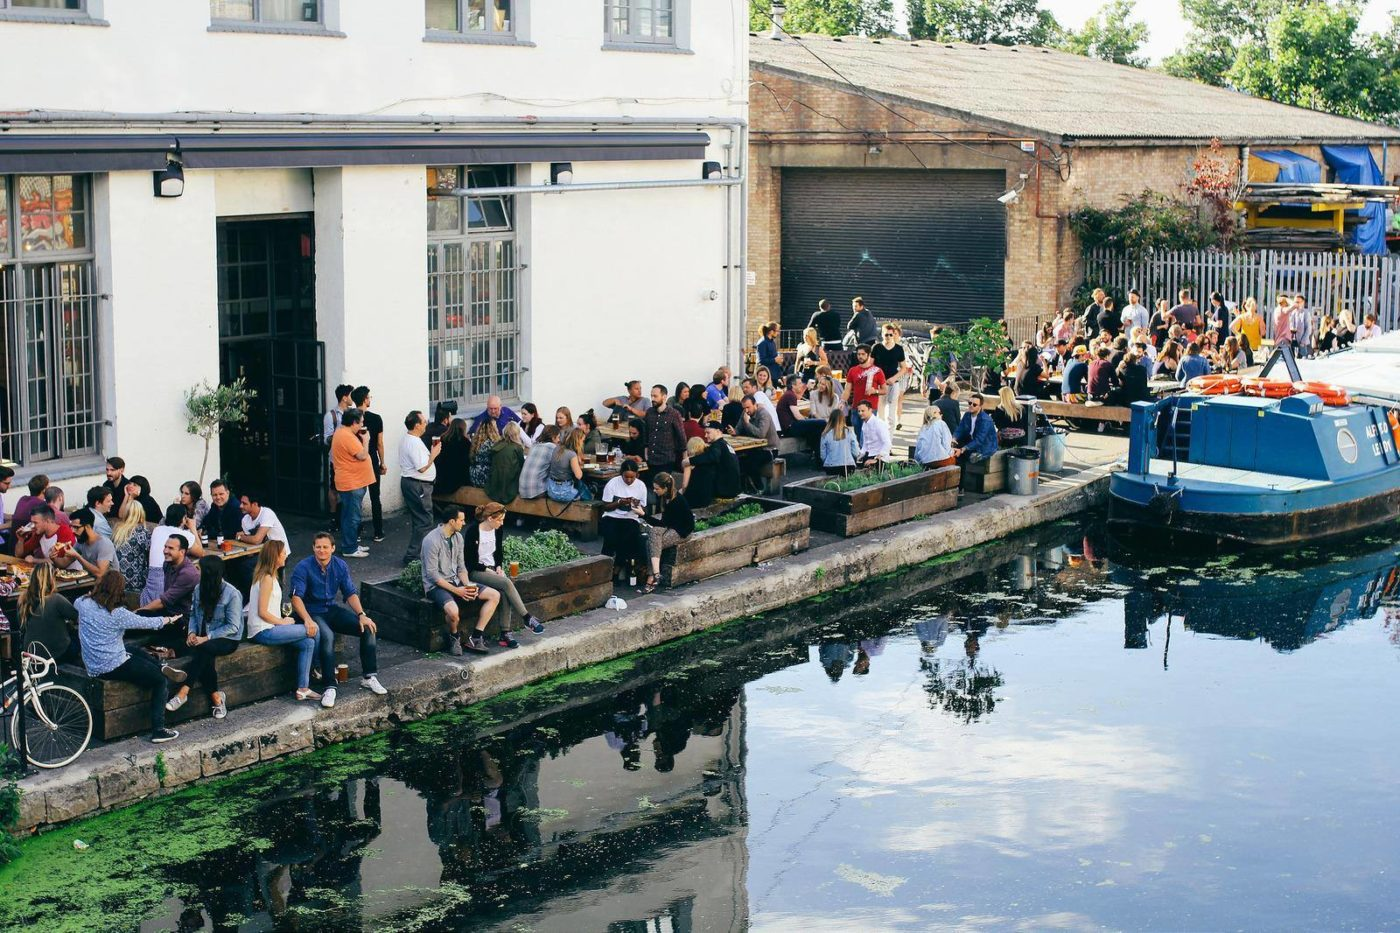 Image of outdoor restaurant or bar scene by Hackney Wick with crowd of people in the sun